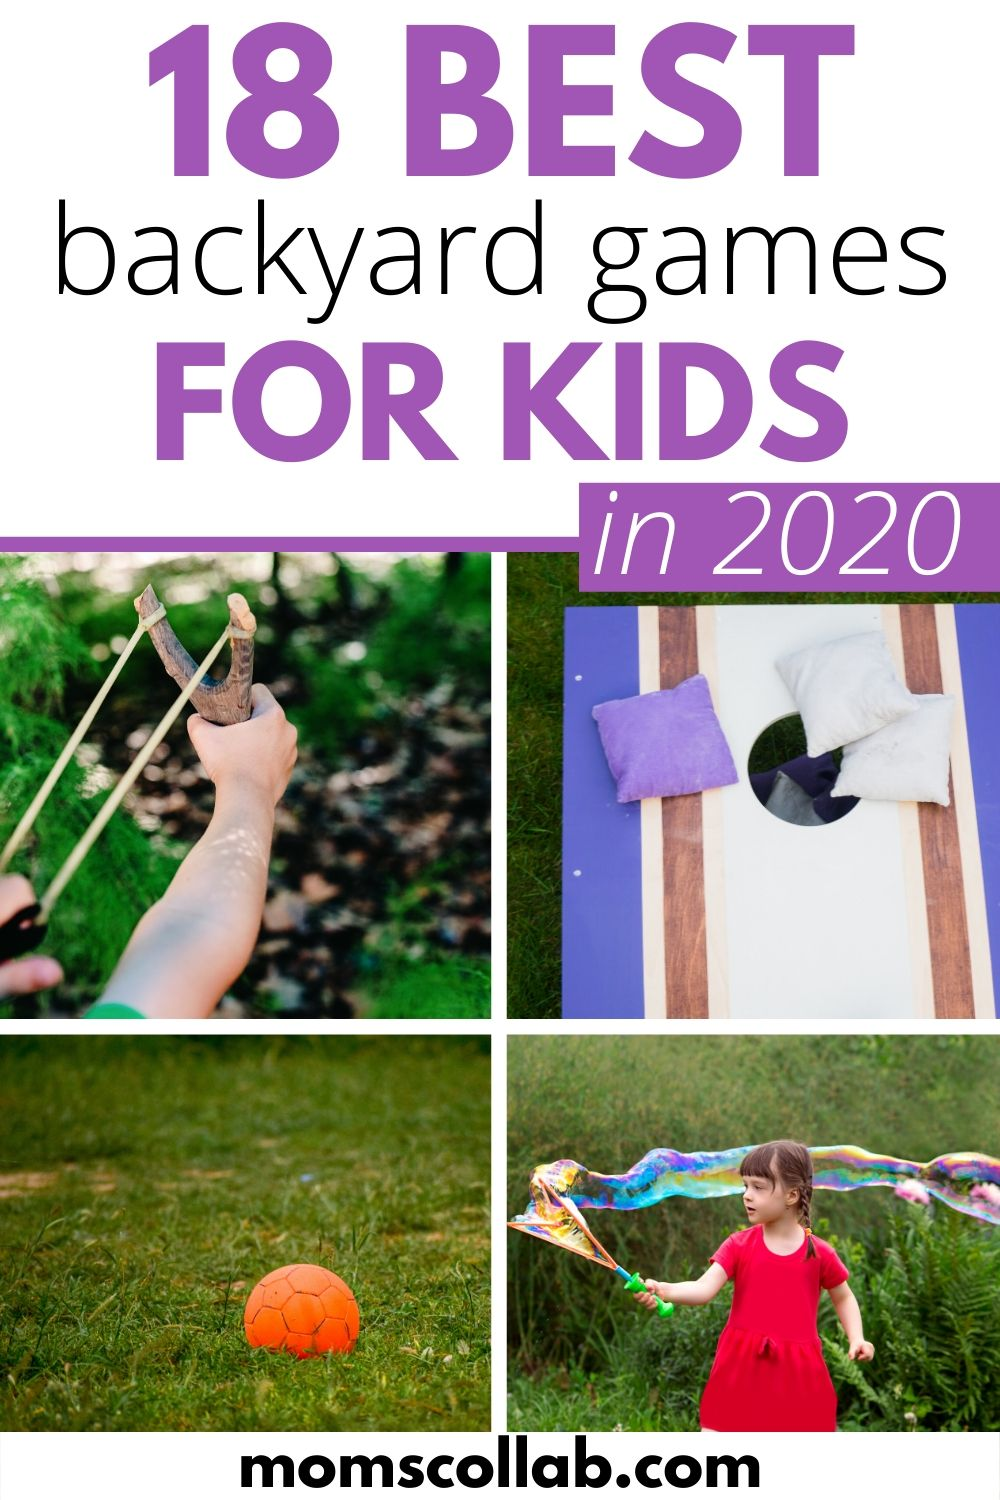 Best Backyard Games for Kids